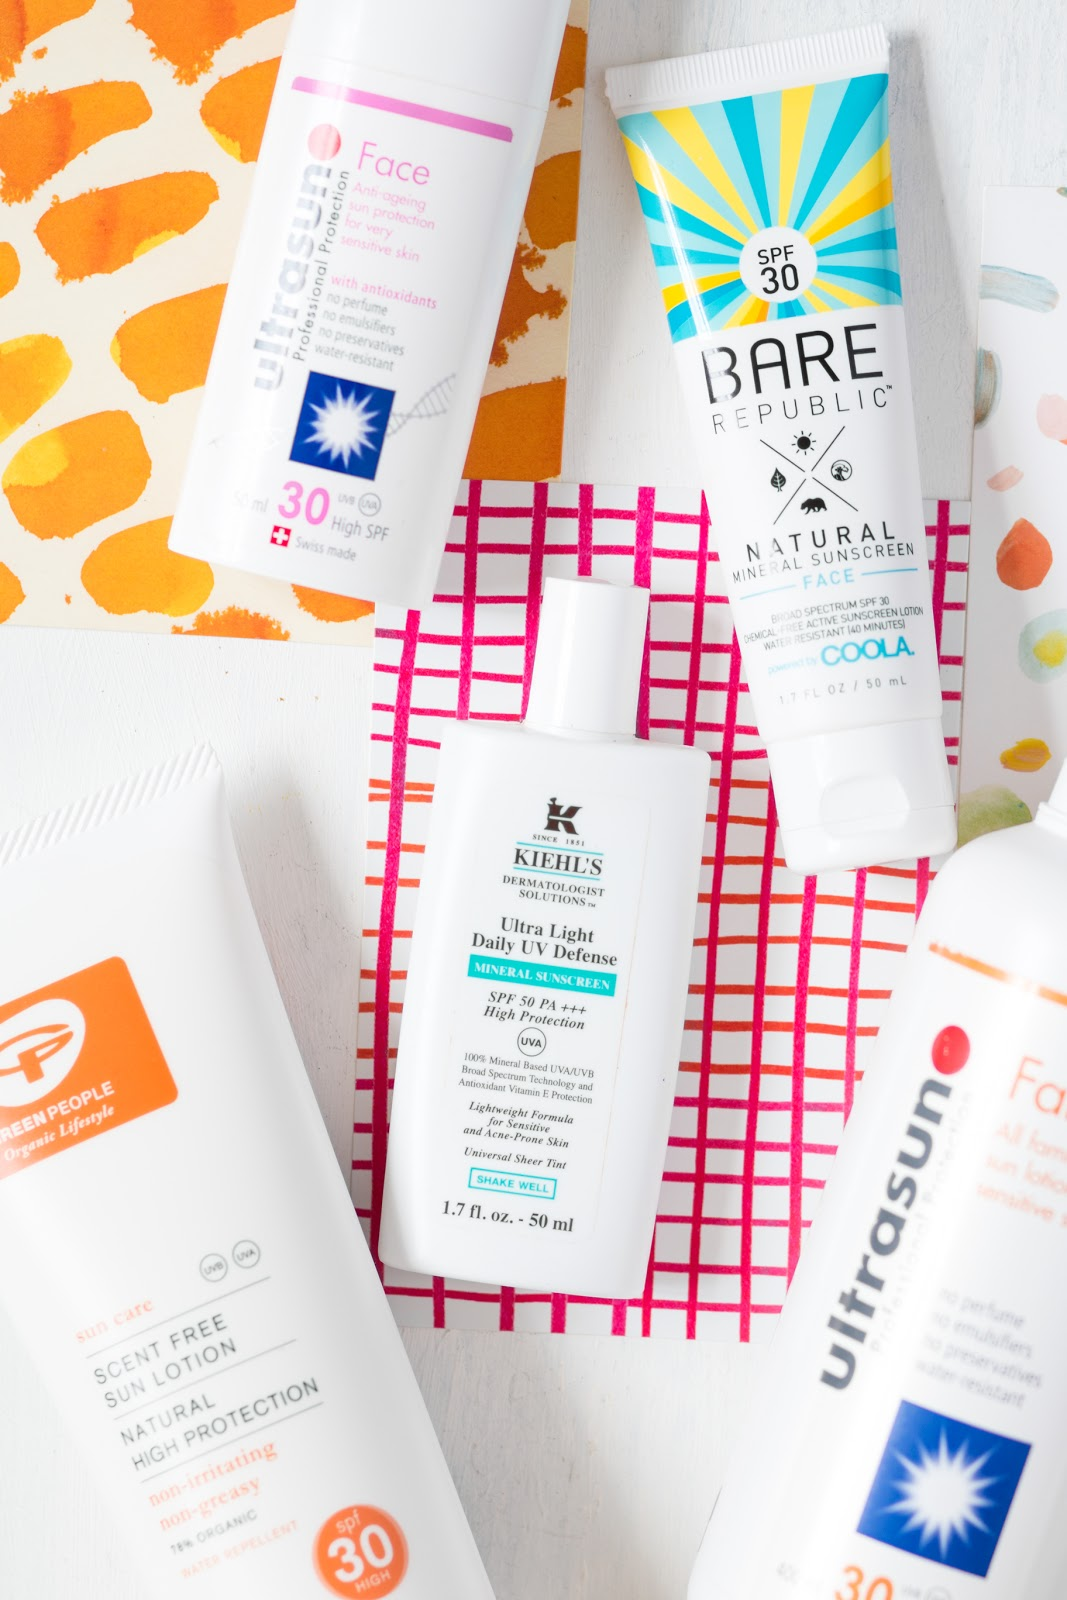 MY CRUELTY FREE + ACNE FRIENDLY SUNCREAM PICKS